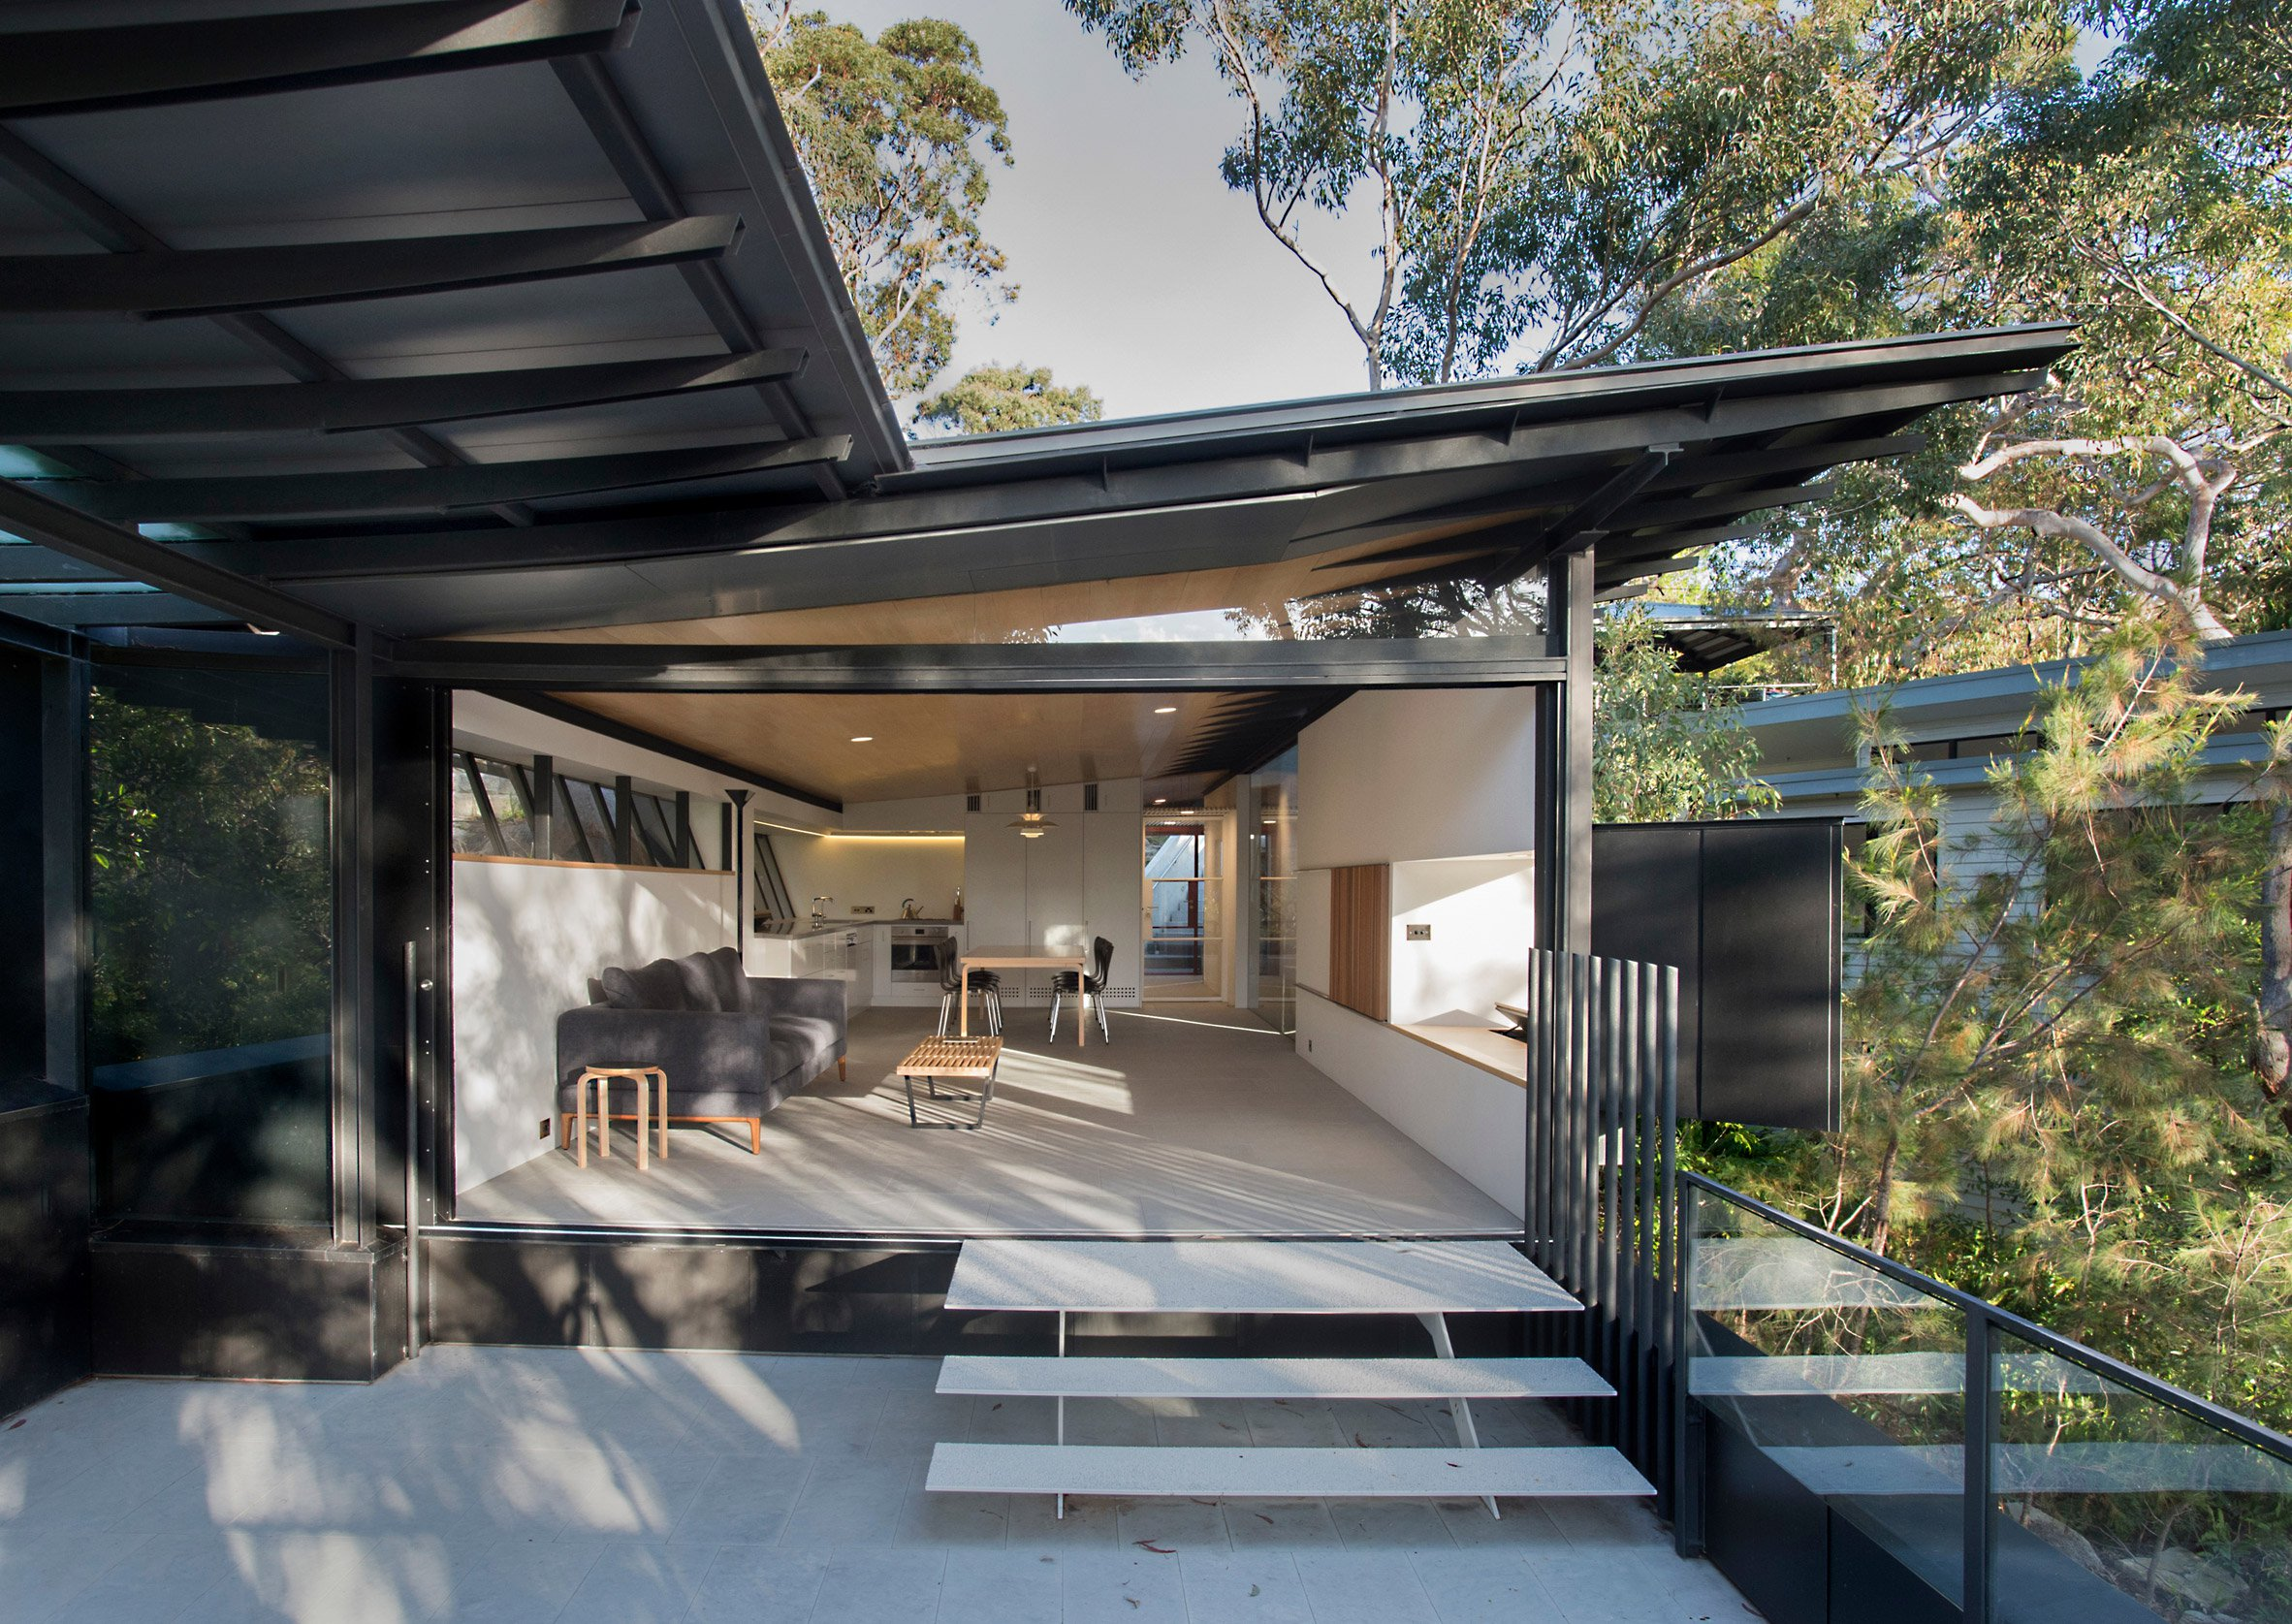 Glenn Murcutt covers bushland home in zinc panels to protect it against wildfire